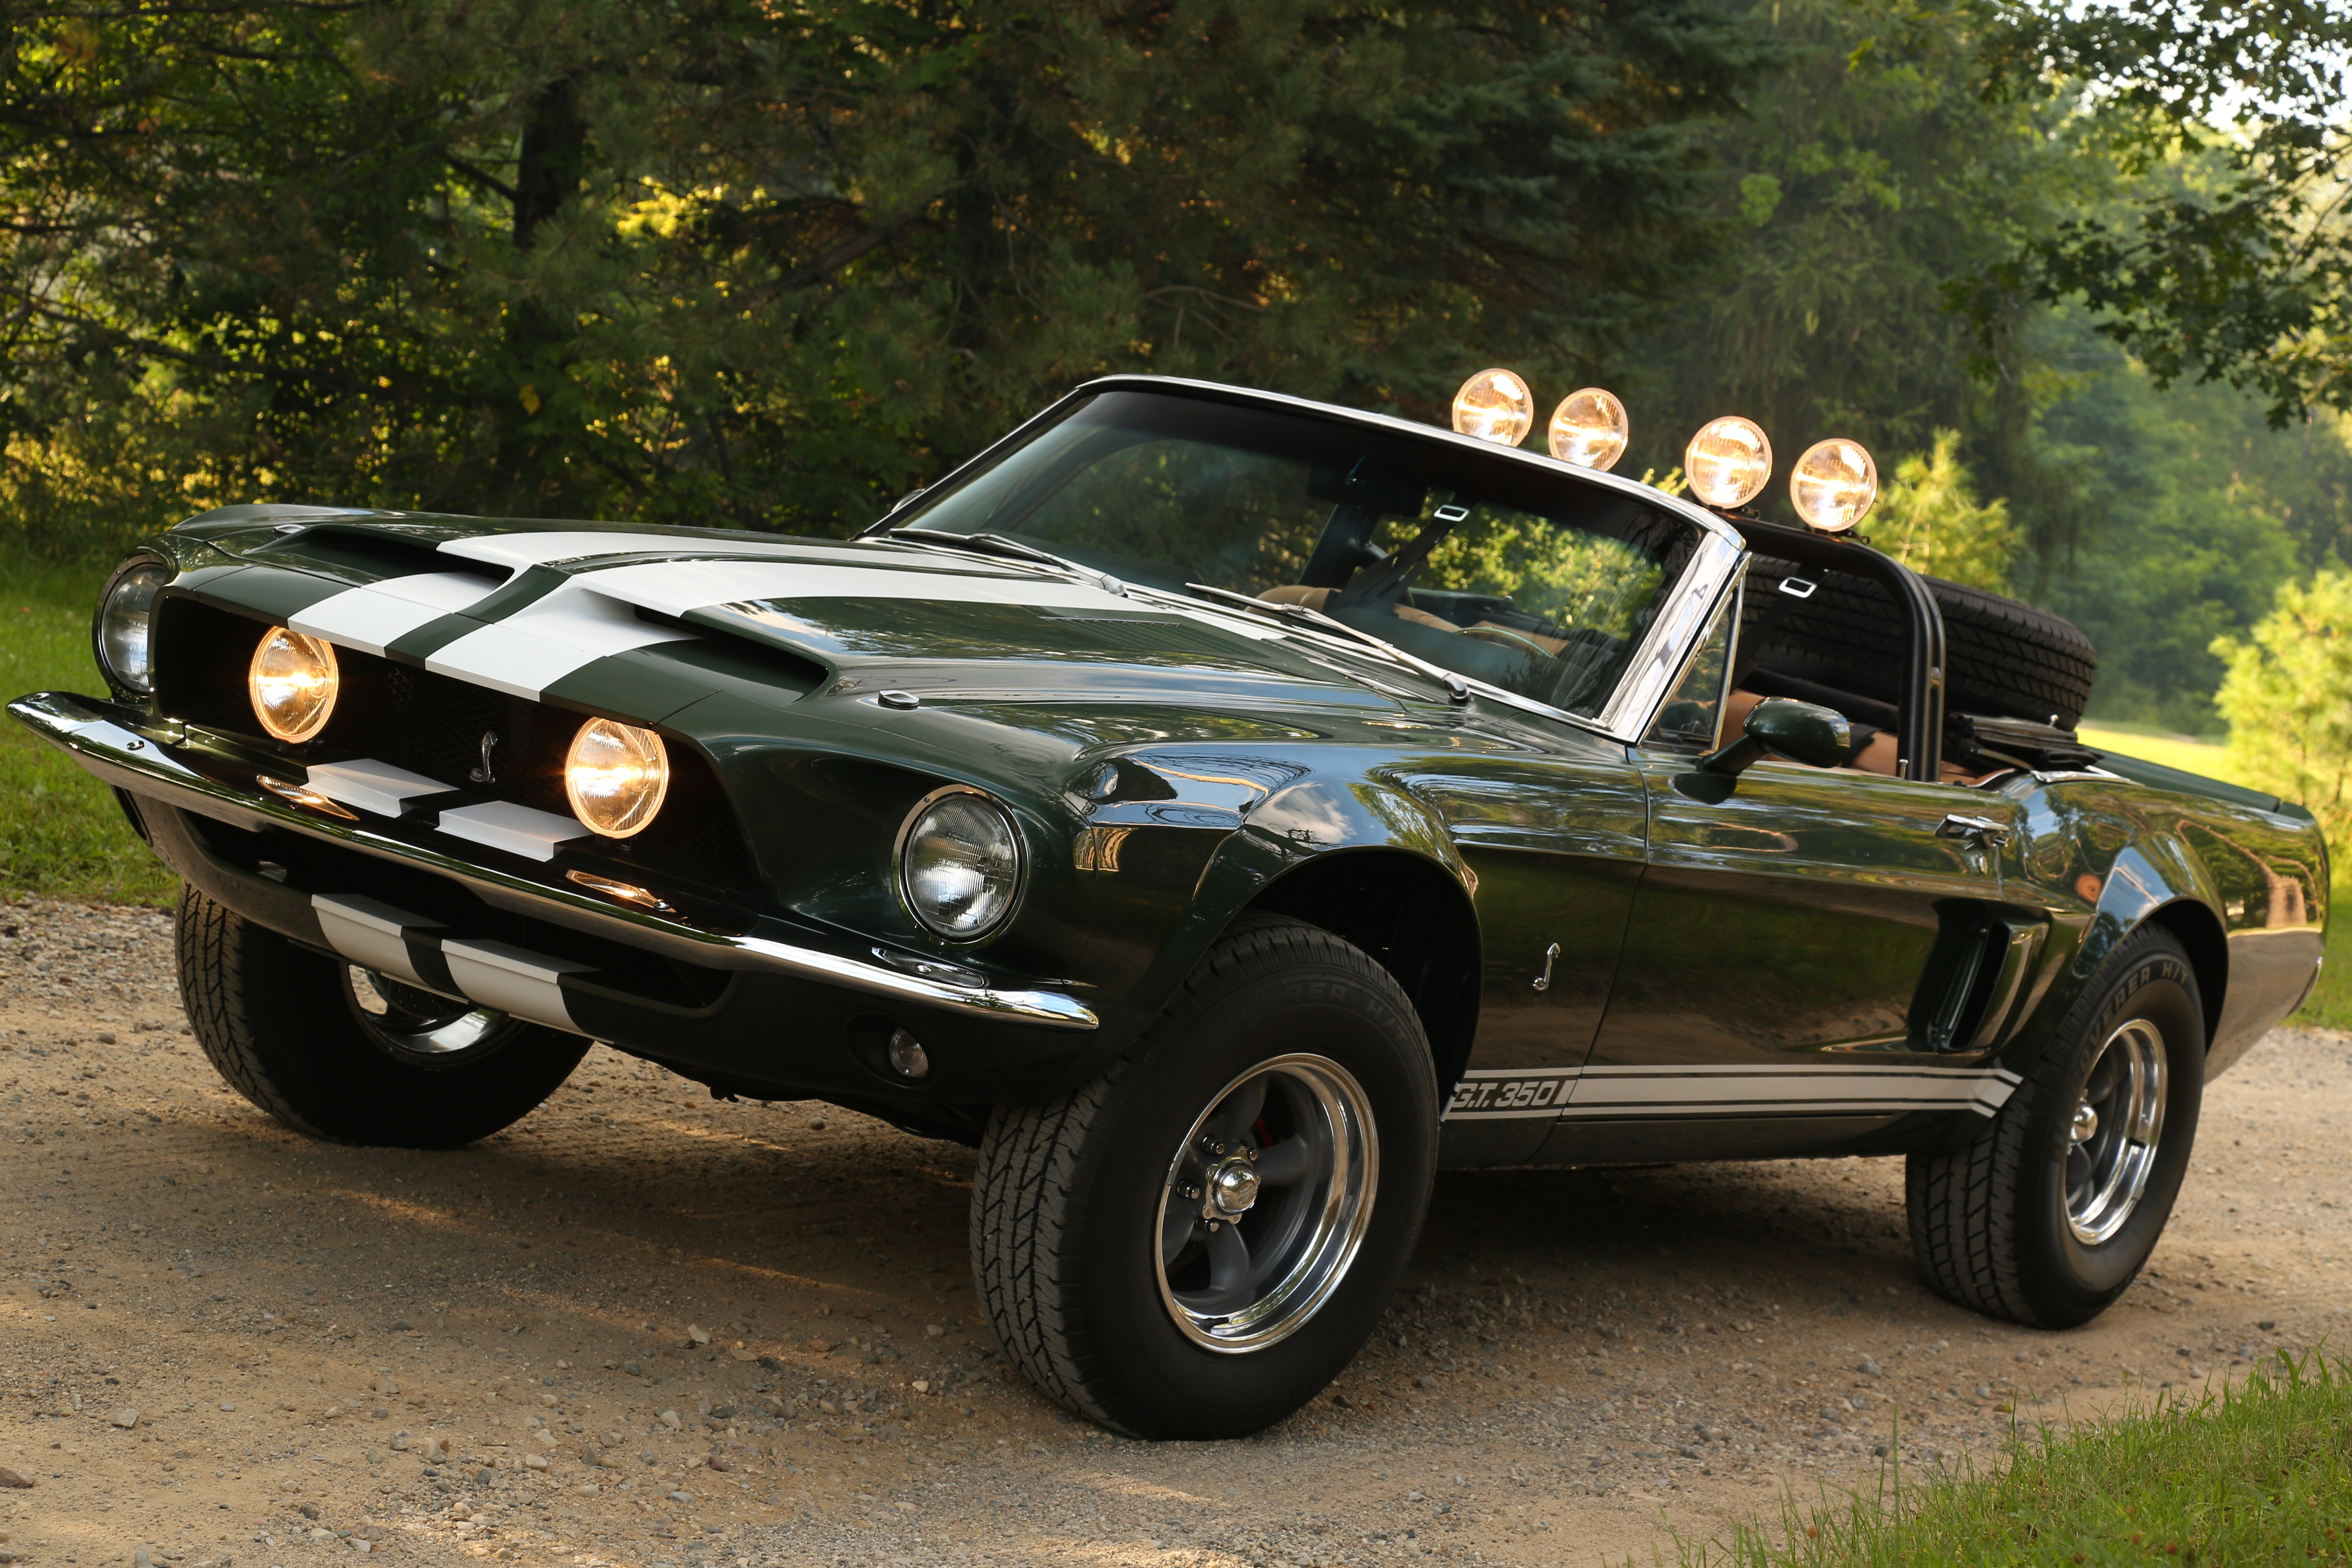 The Recreation Of Thomas Crown Affair Movie Mustang